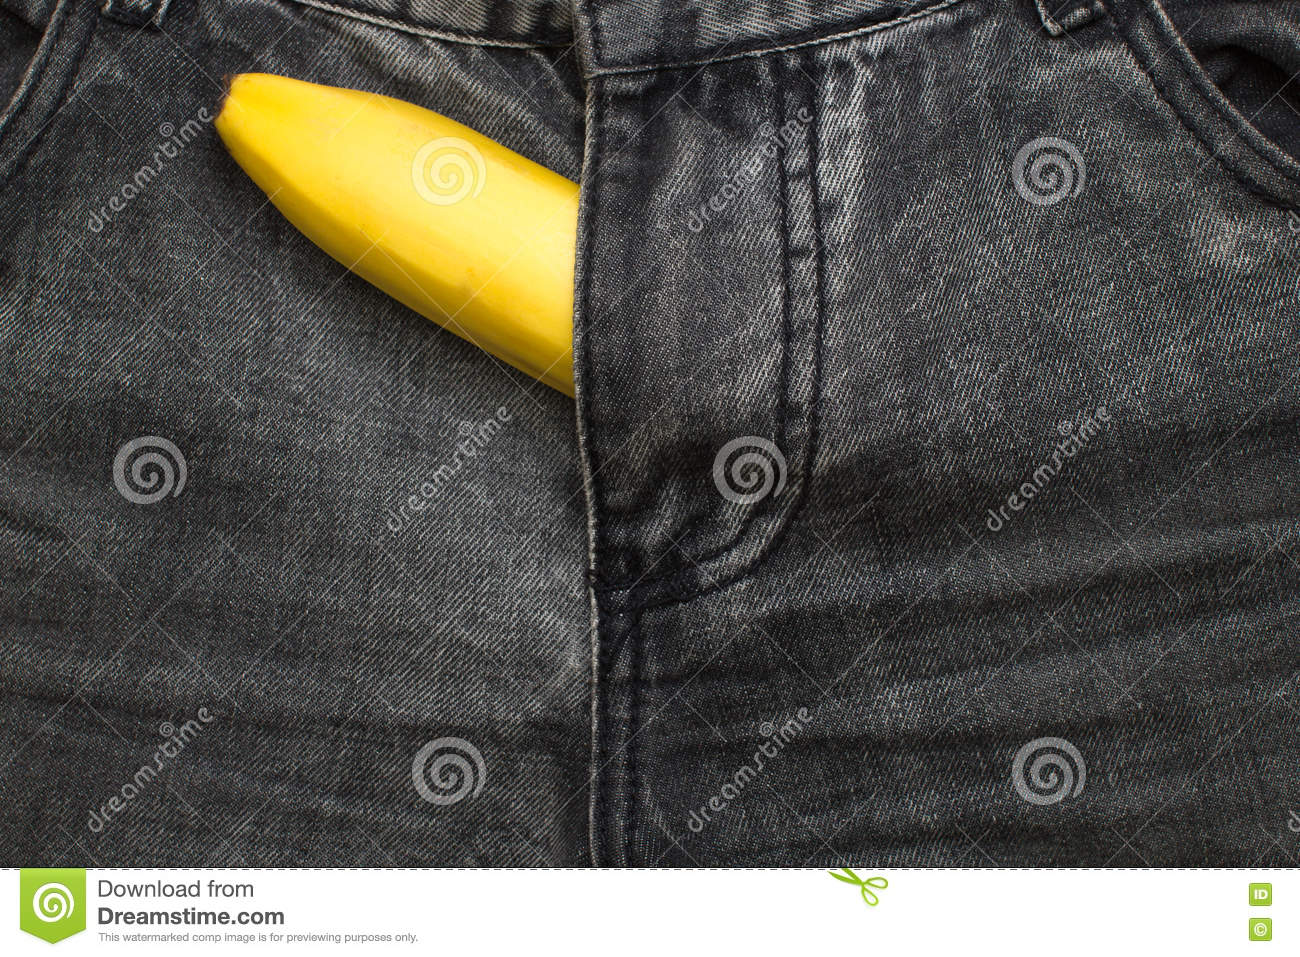 Banana Fruit Inside Jeans Pants Stock Image Image Of Material